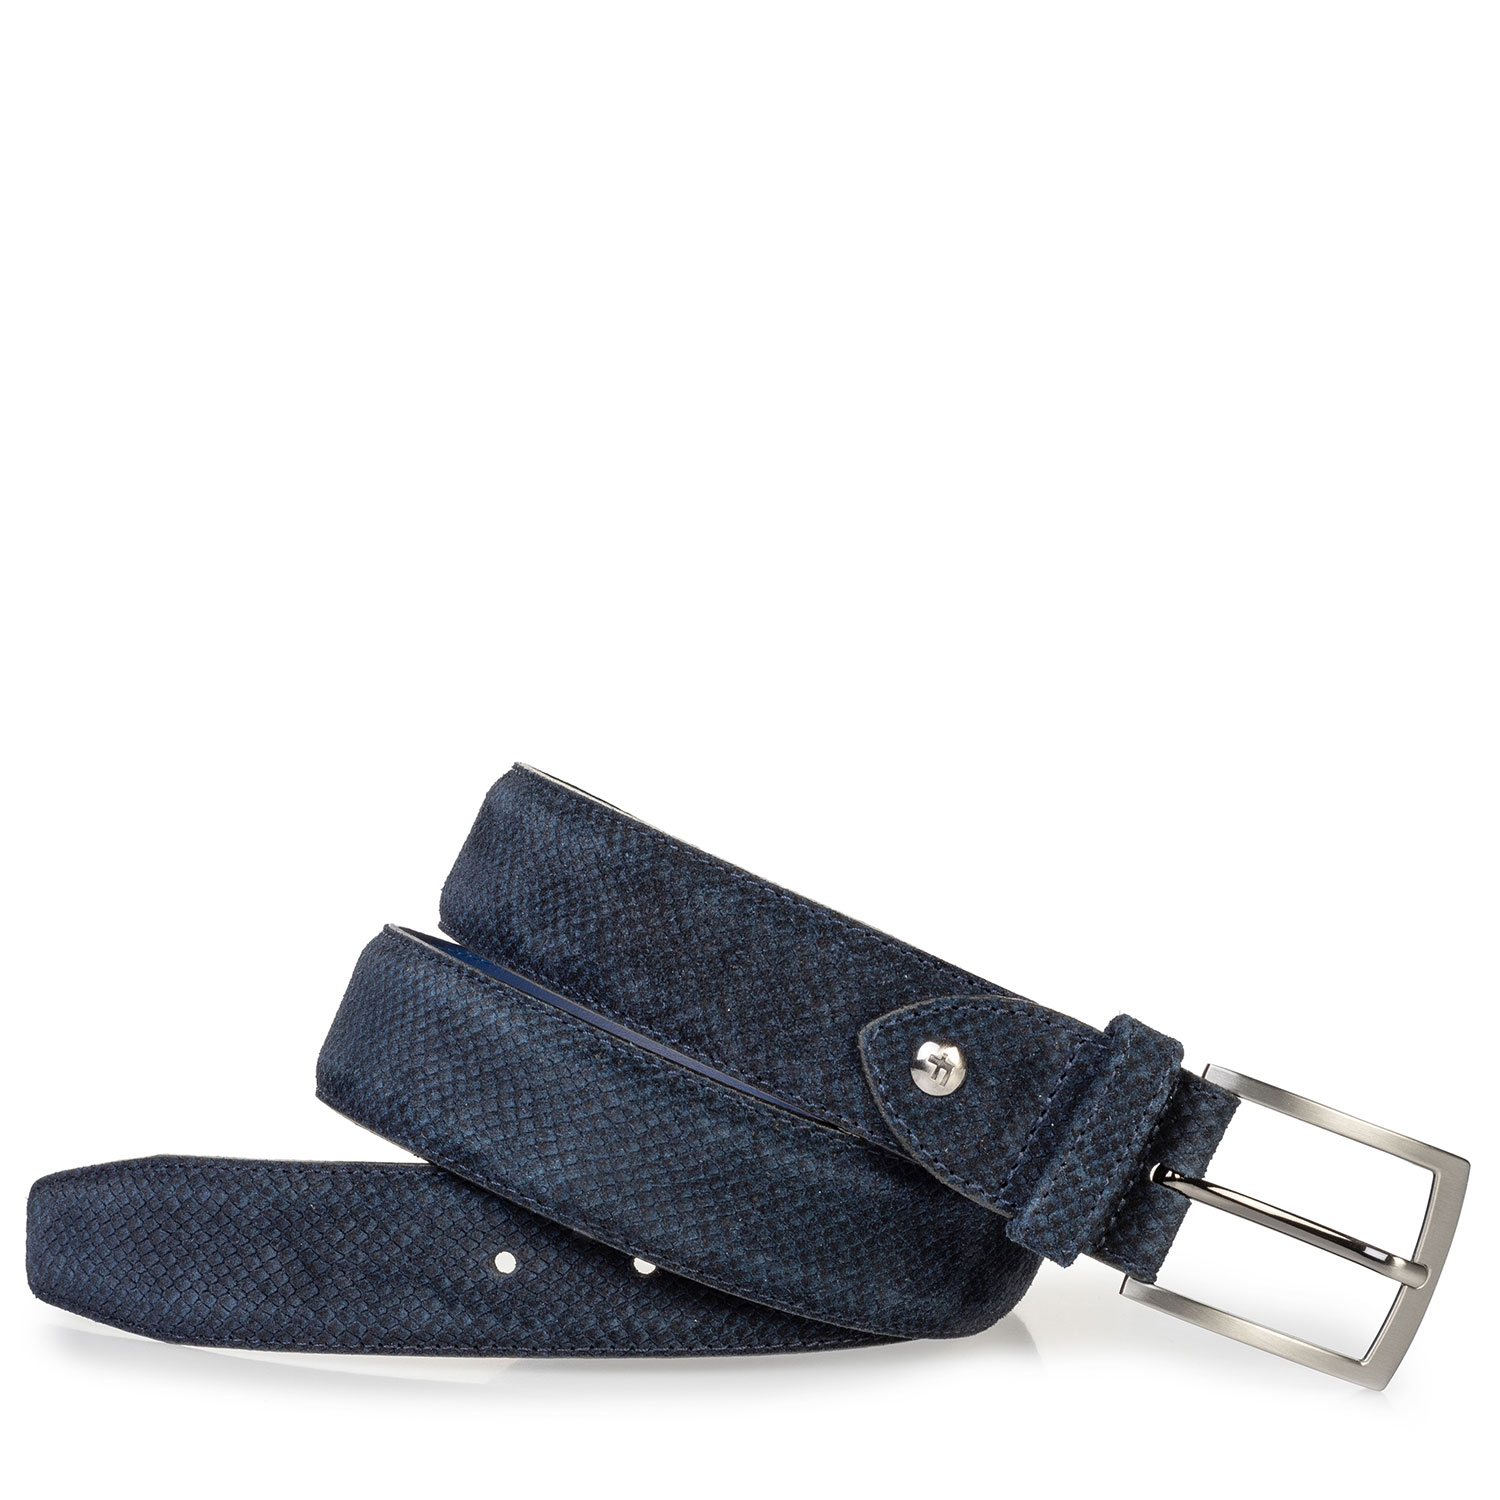 75203/19 - Suede leather belt dark blue with print